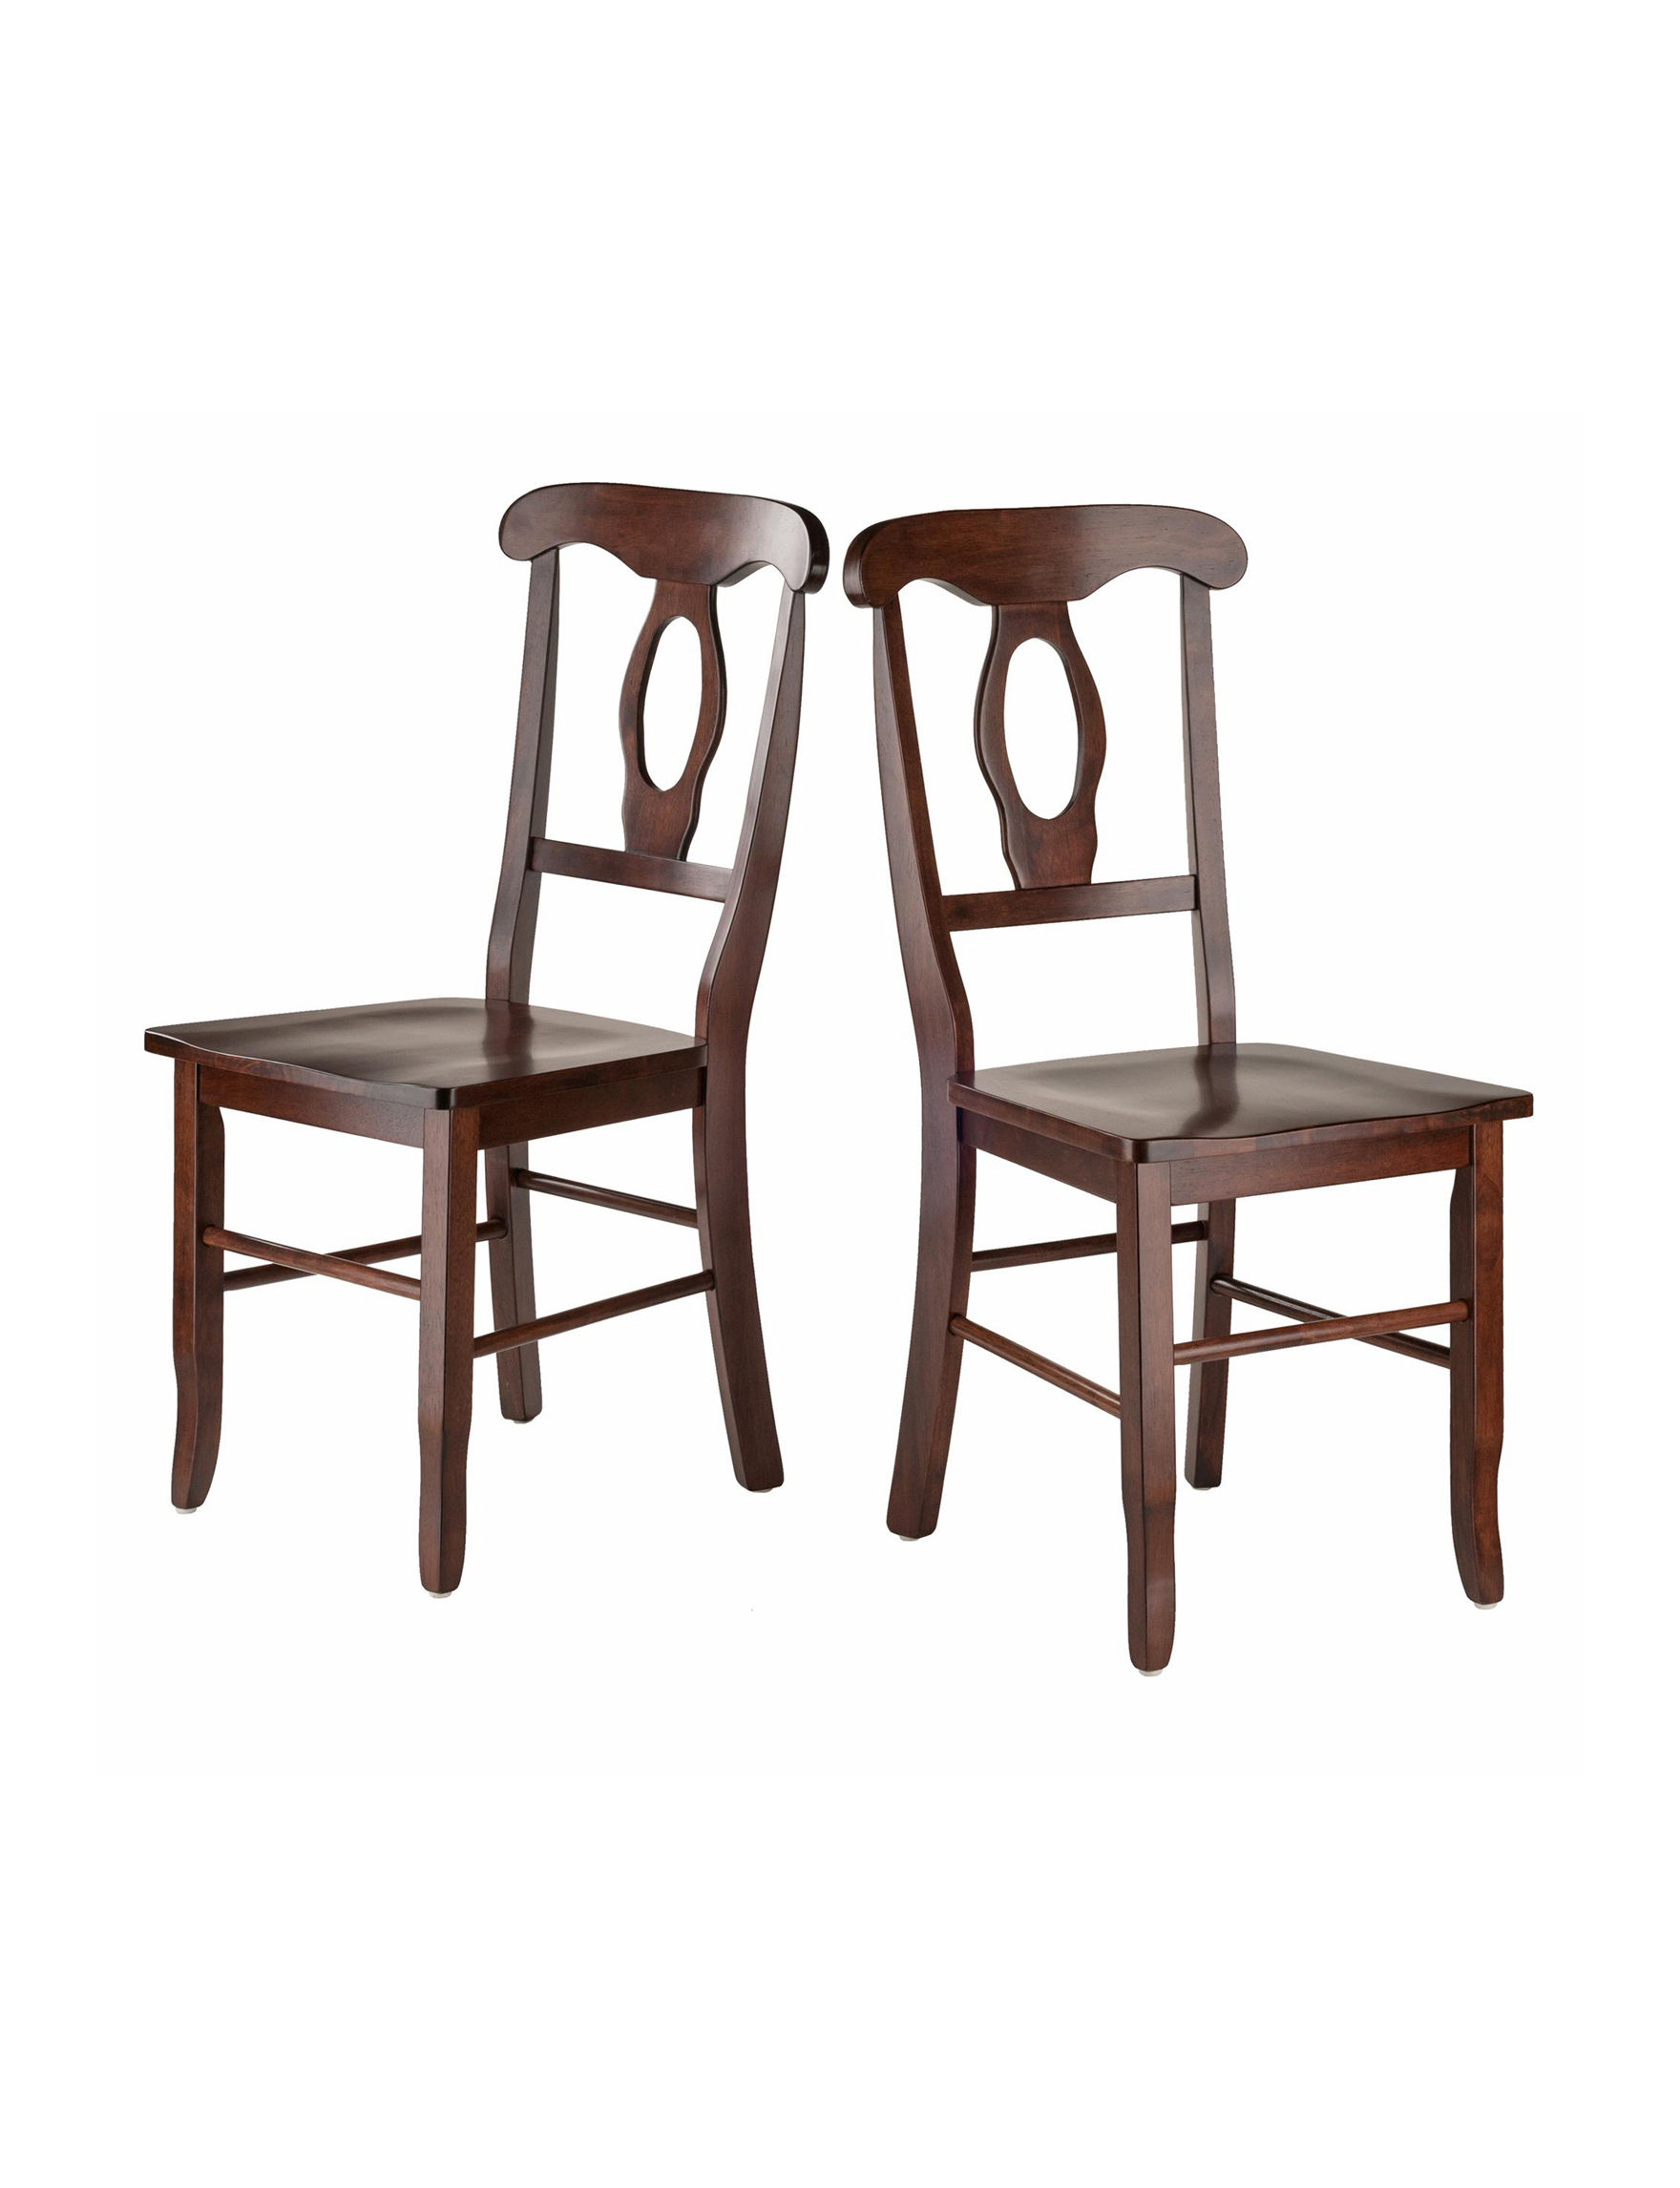 Winsome Walnut Dining Chairs Kitchen & Dining Furniture